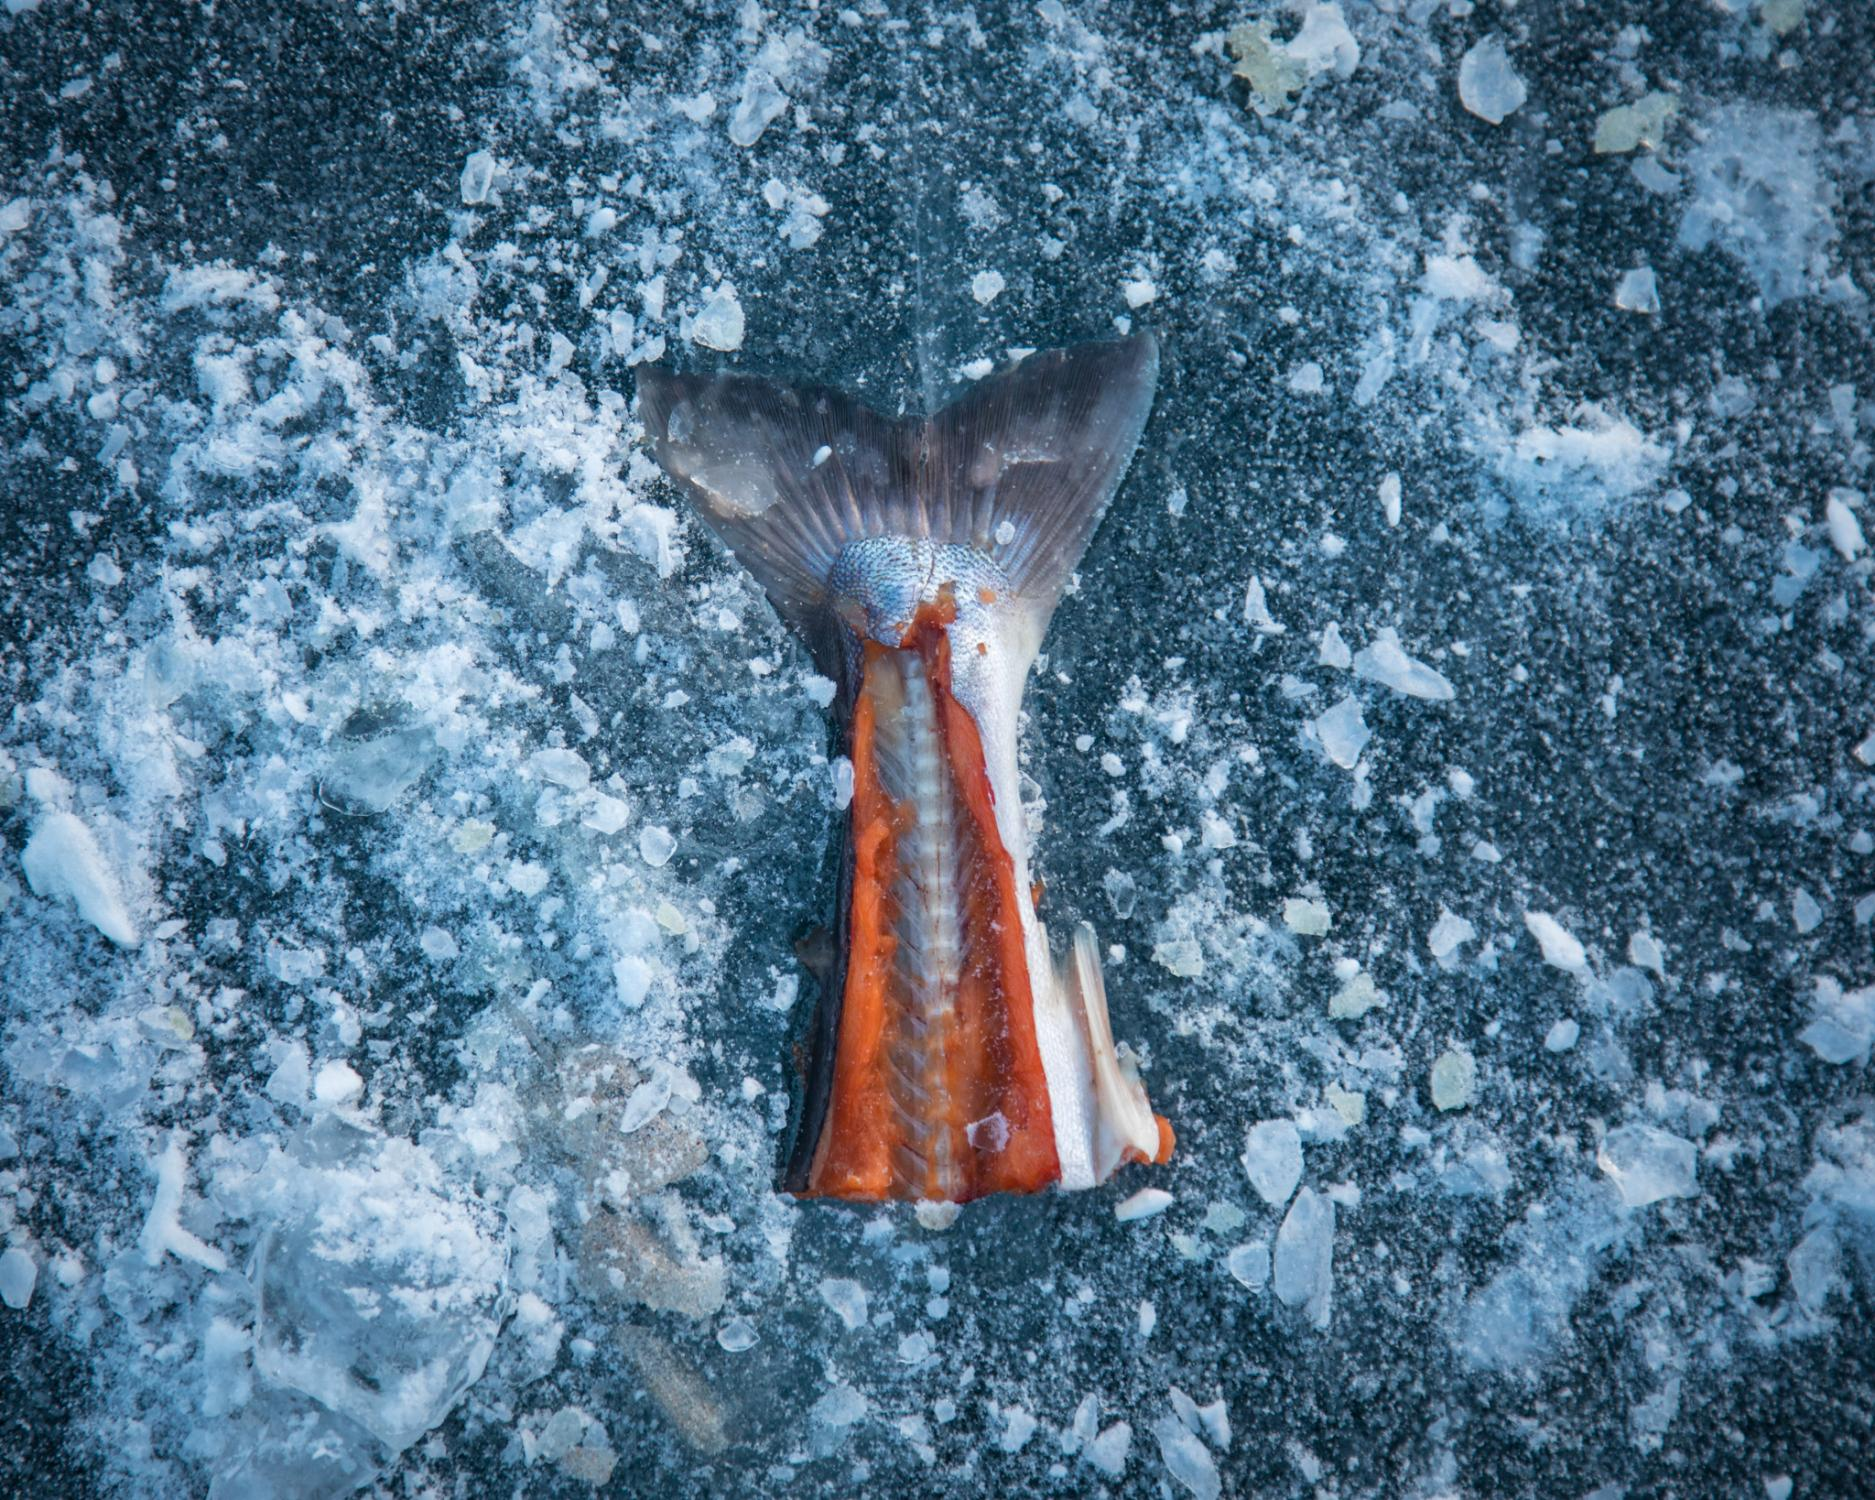 The tail of an arctic char near an ice fishing hole at Kuugarjuk Lake. Every year the community camps together at nearby lakes over a three-day weekend in May to catch arctic char. Cash prizes are awarded for the largest fish.